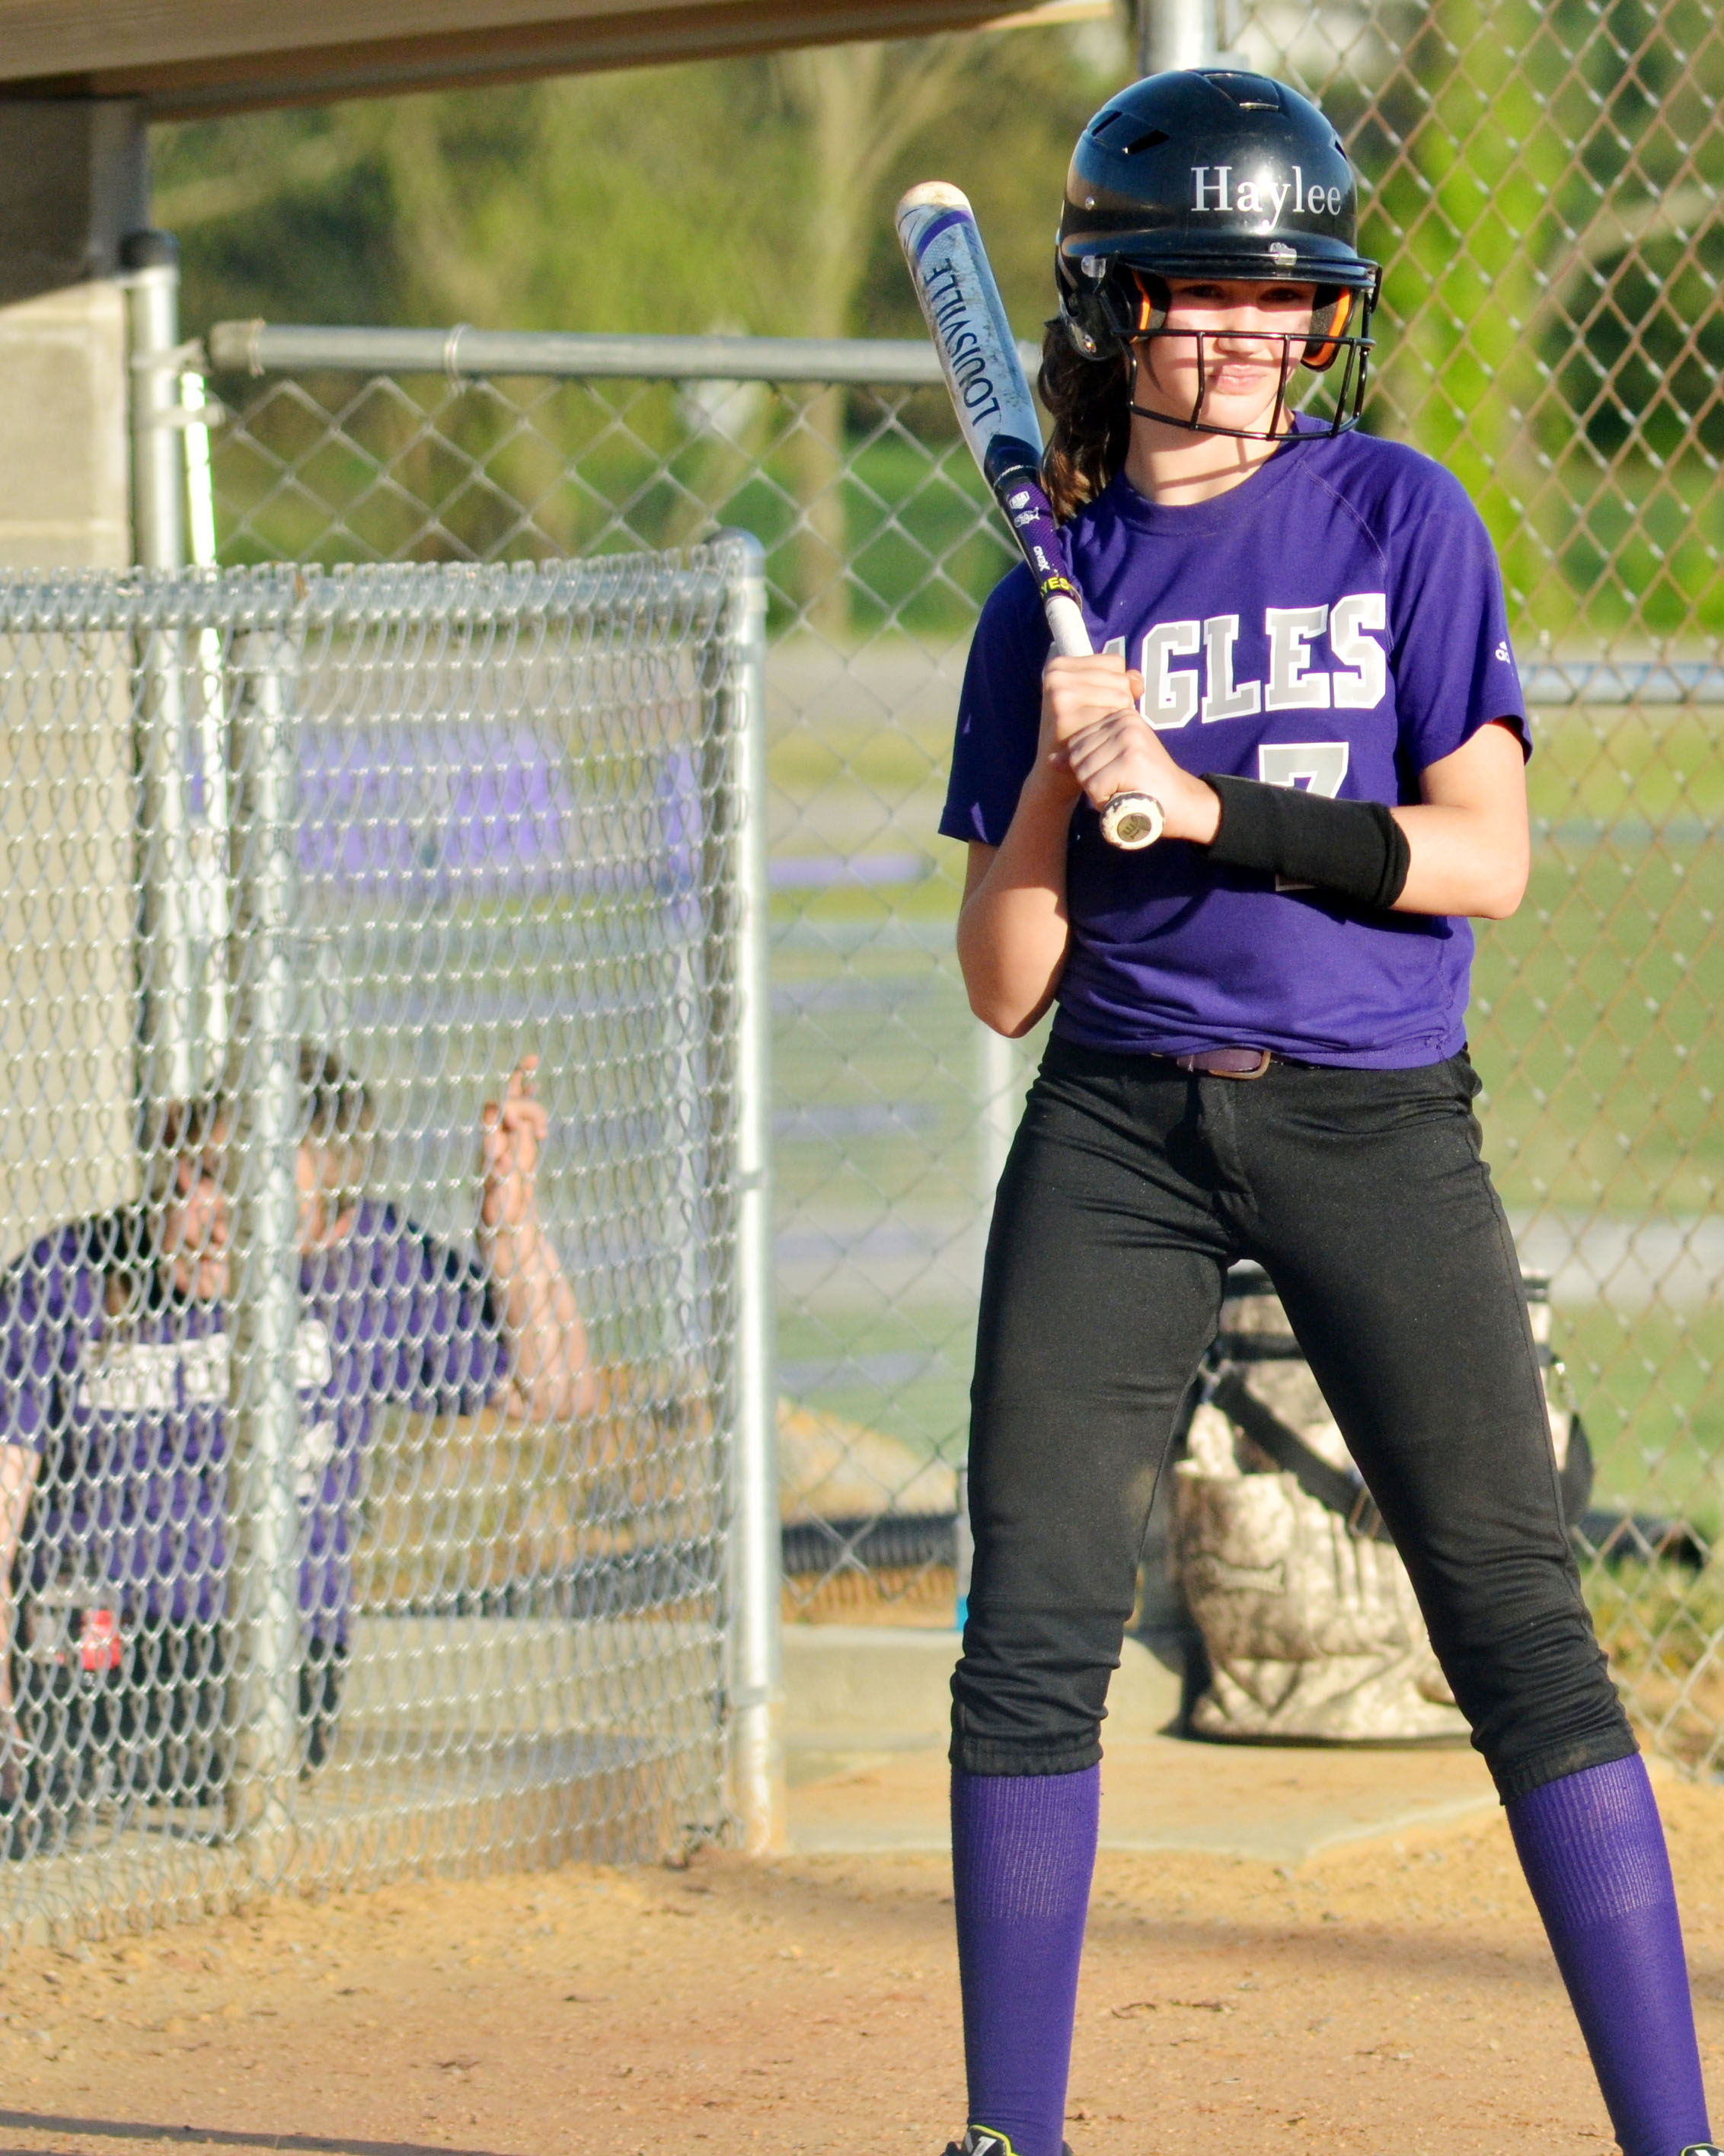 CMS sixth-grader Haylee Allen waits to bat.